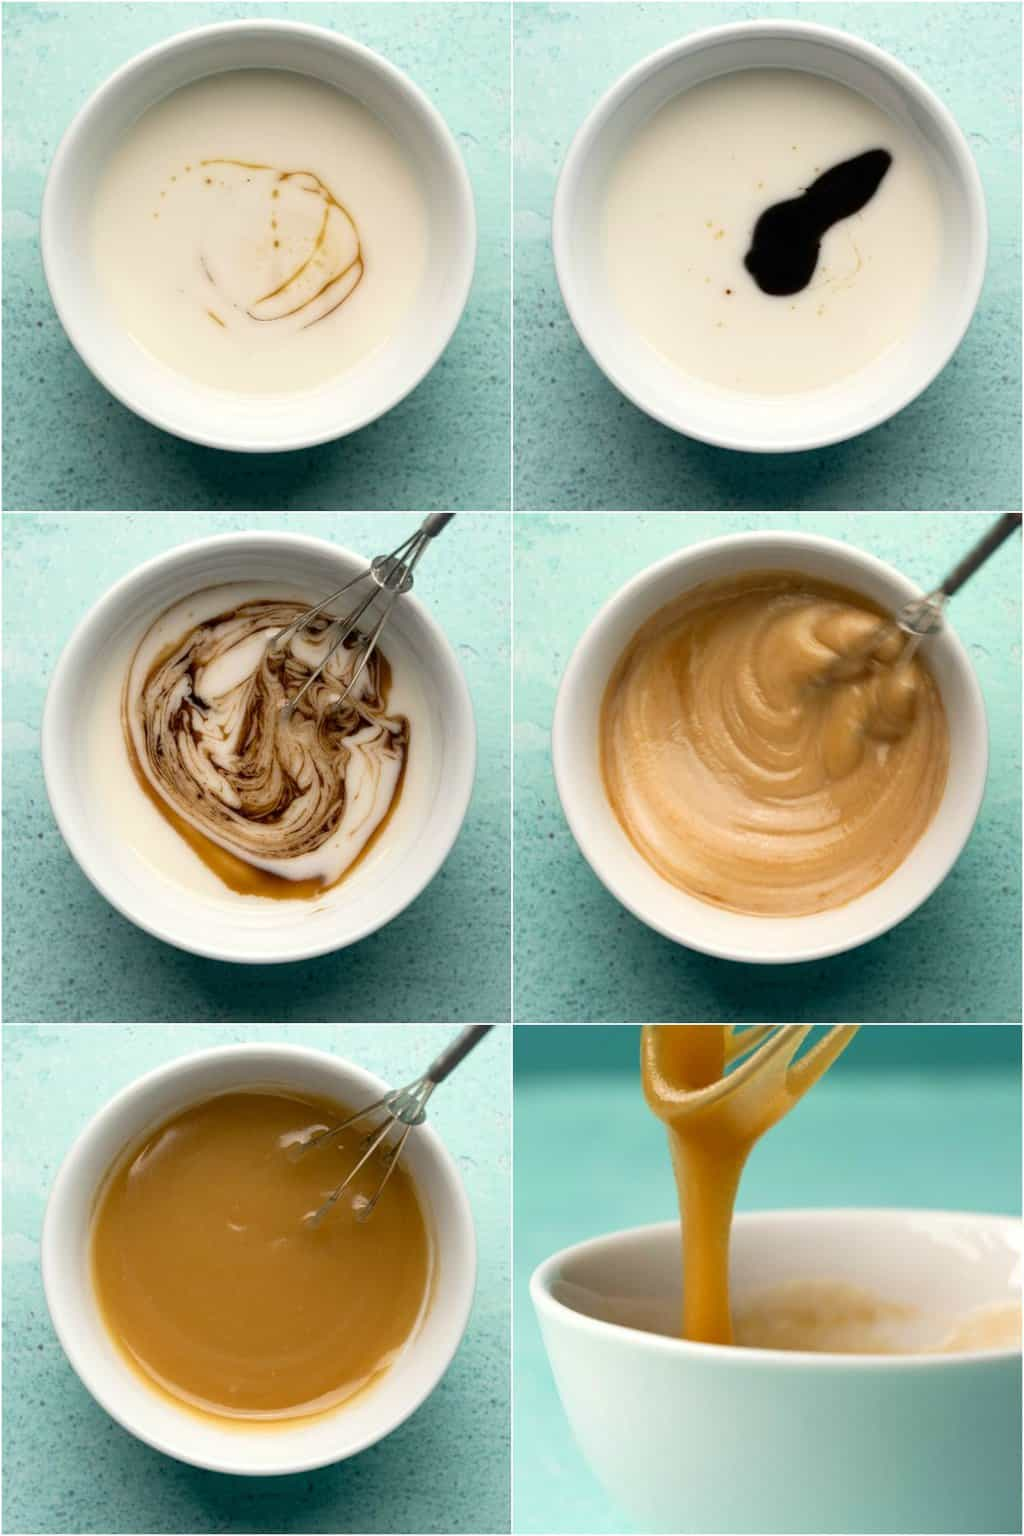 Step by step process photo collage of making vegan caramel.